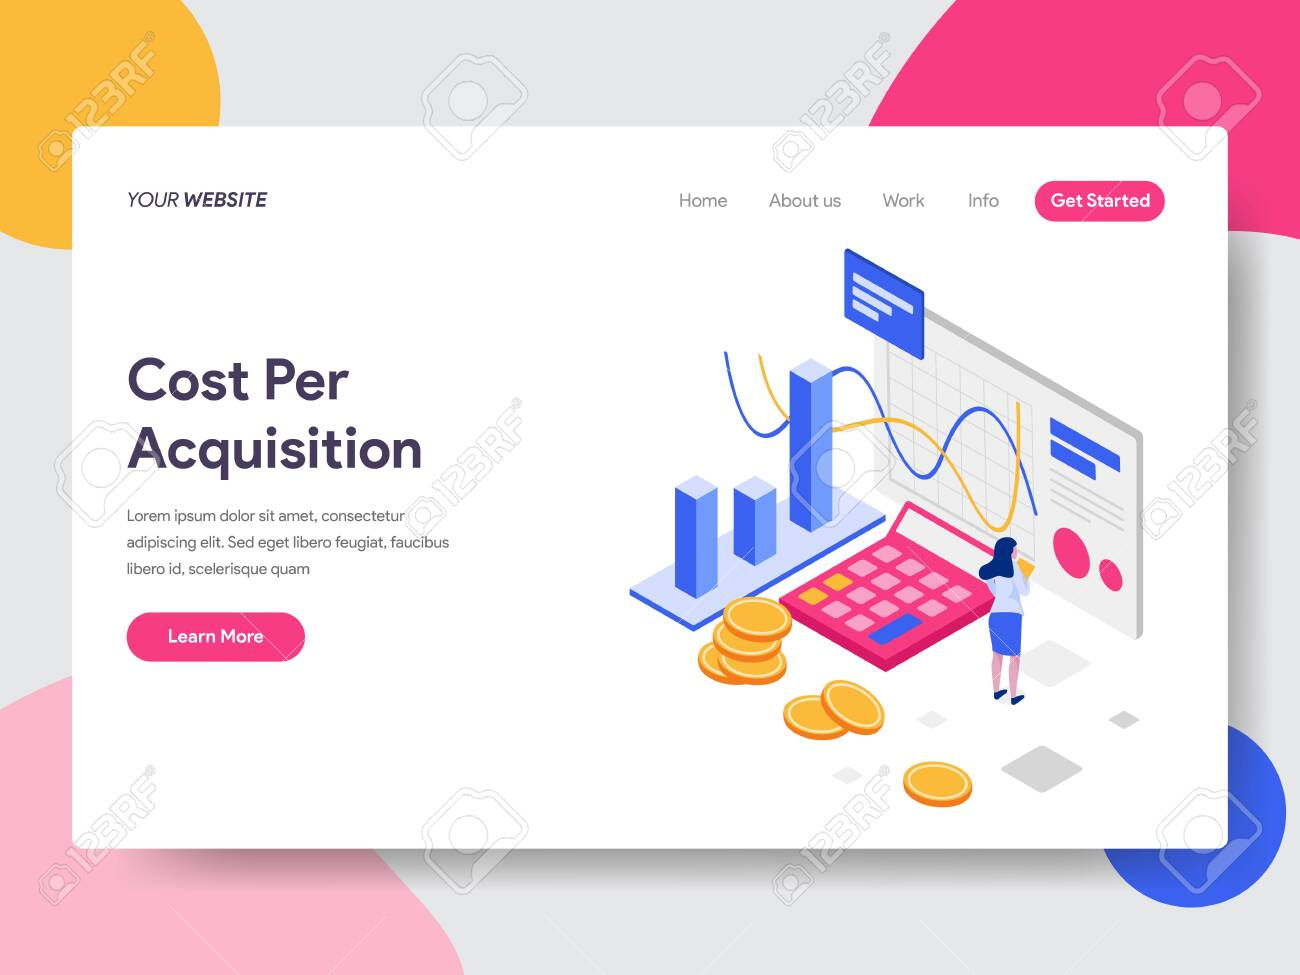 Landing Page Template Of Cost Per Acquisition Isometric Illustration Royalty Free Cliparts Vectors And Stock Illustration Image 127391802